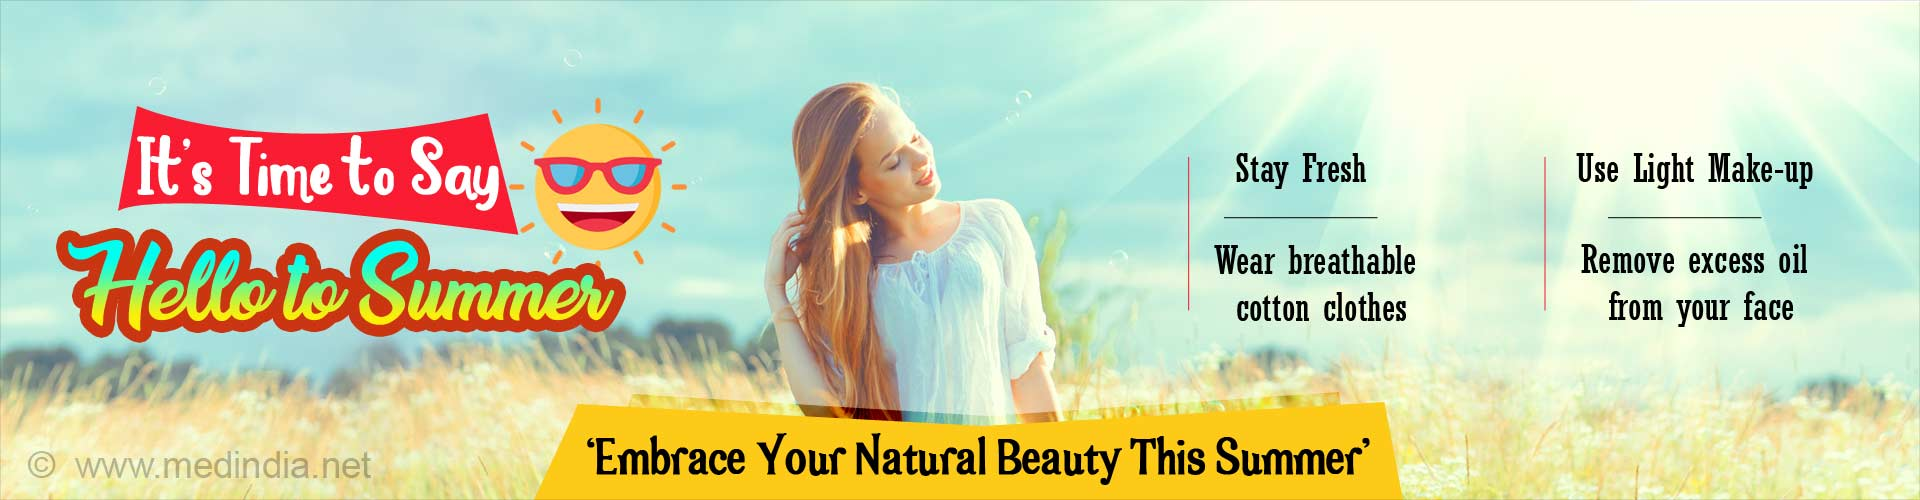 It's time to say hello to summer. Stay fresh. Wear breathable cotton clothes. Use light make-up. Remove excess oil from your face. Embrace your natural beauty this summer.